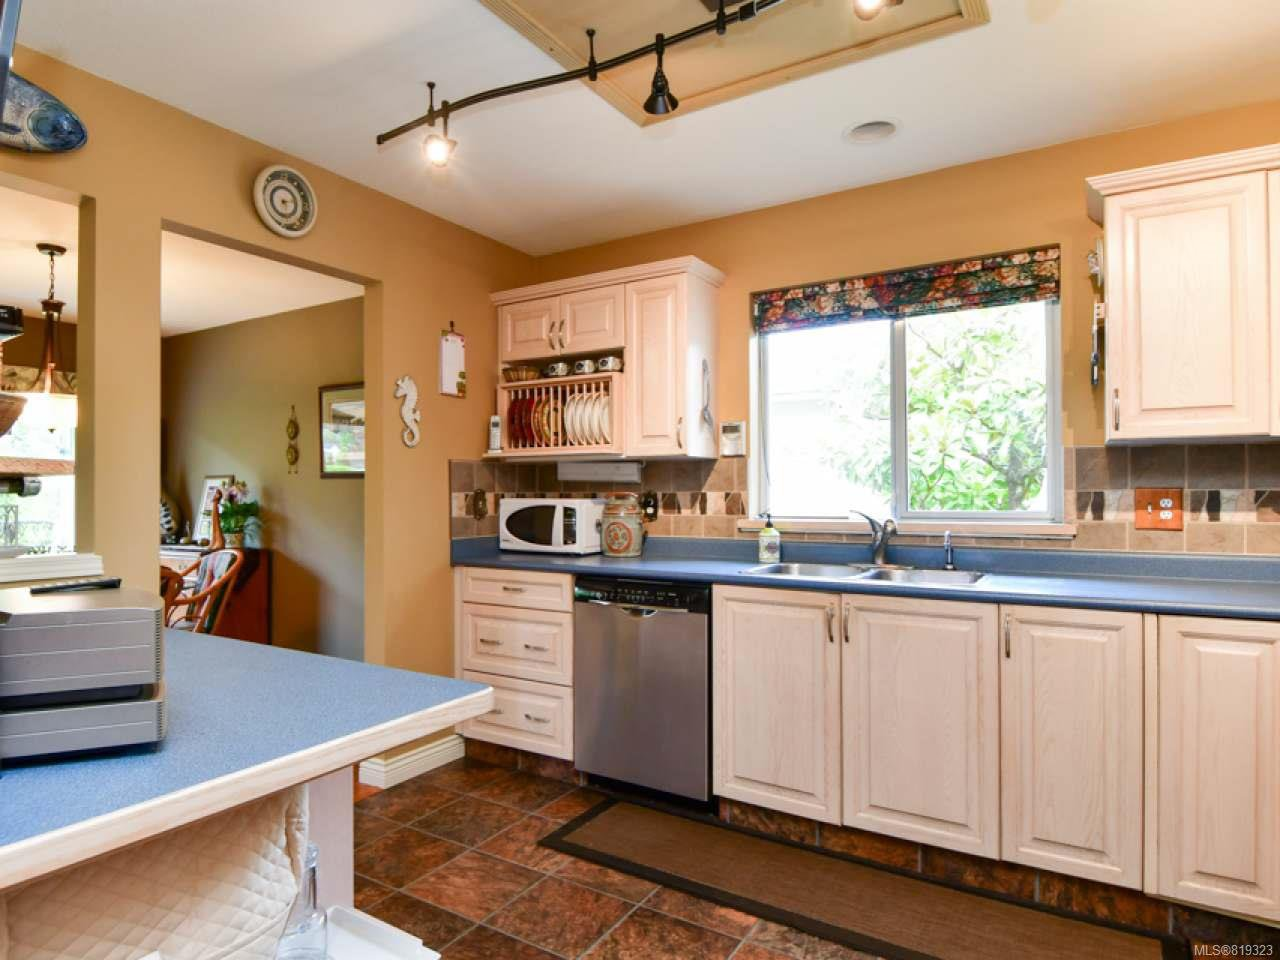 Photo 12: Photos: 35 2055 Galerno Rd in CAMPBELL RIVER: CR Willow Point Row/Townhouse for sale (Campbell River)  : MLS®# 819323